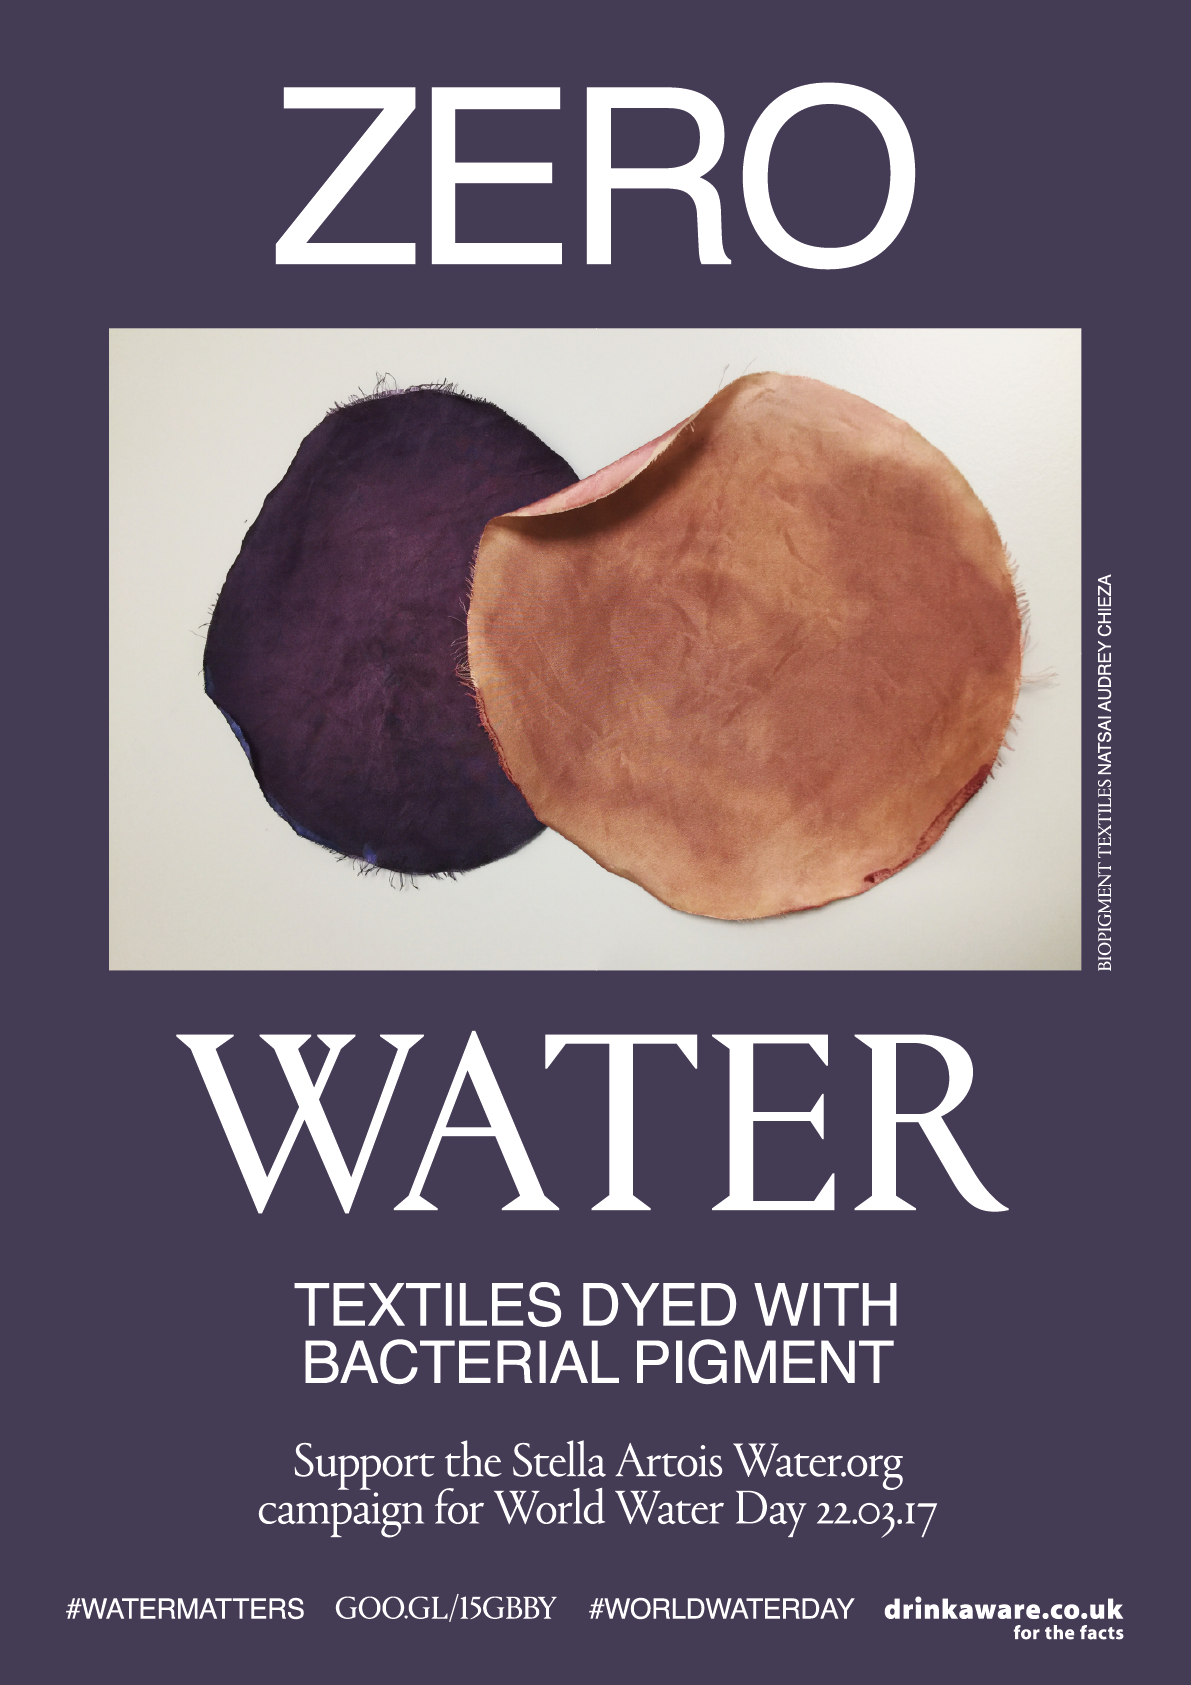 ZERO WATER, MATTER                                                                                                    The textiles undustry is the second largest in world making it one of the most water polluting. Designers such as  Natsai Audrey Chieza  from  Faber Futures  are finding new ways in which to eliminate water usage with biological pigments from bacteria for fabrics dyeing and printing.